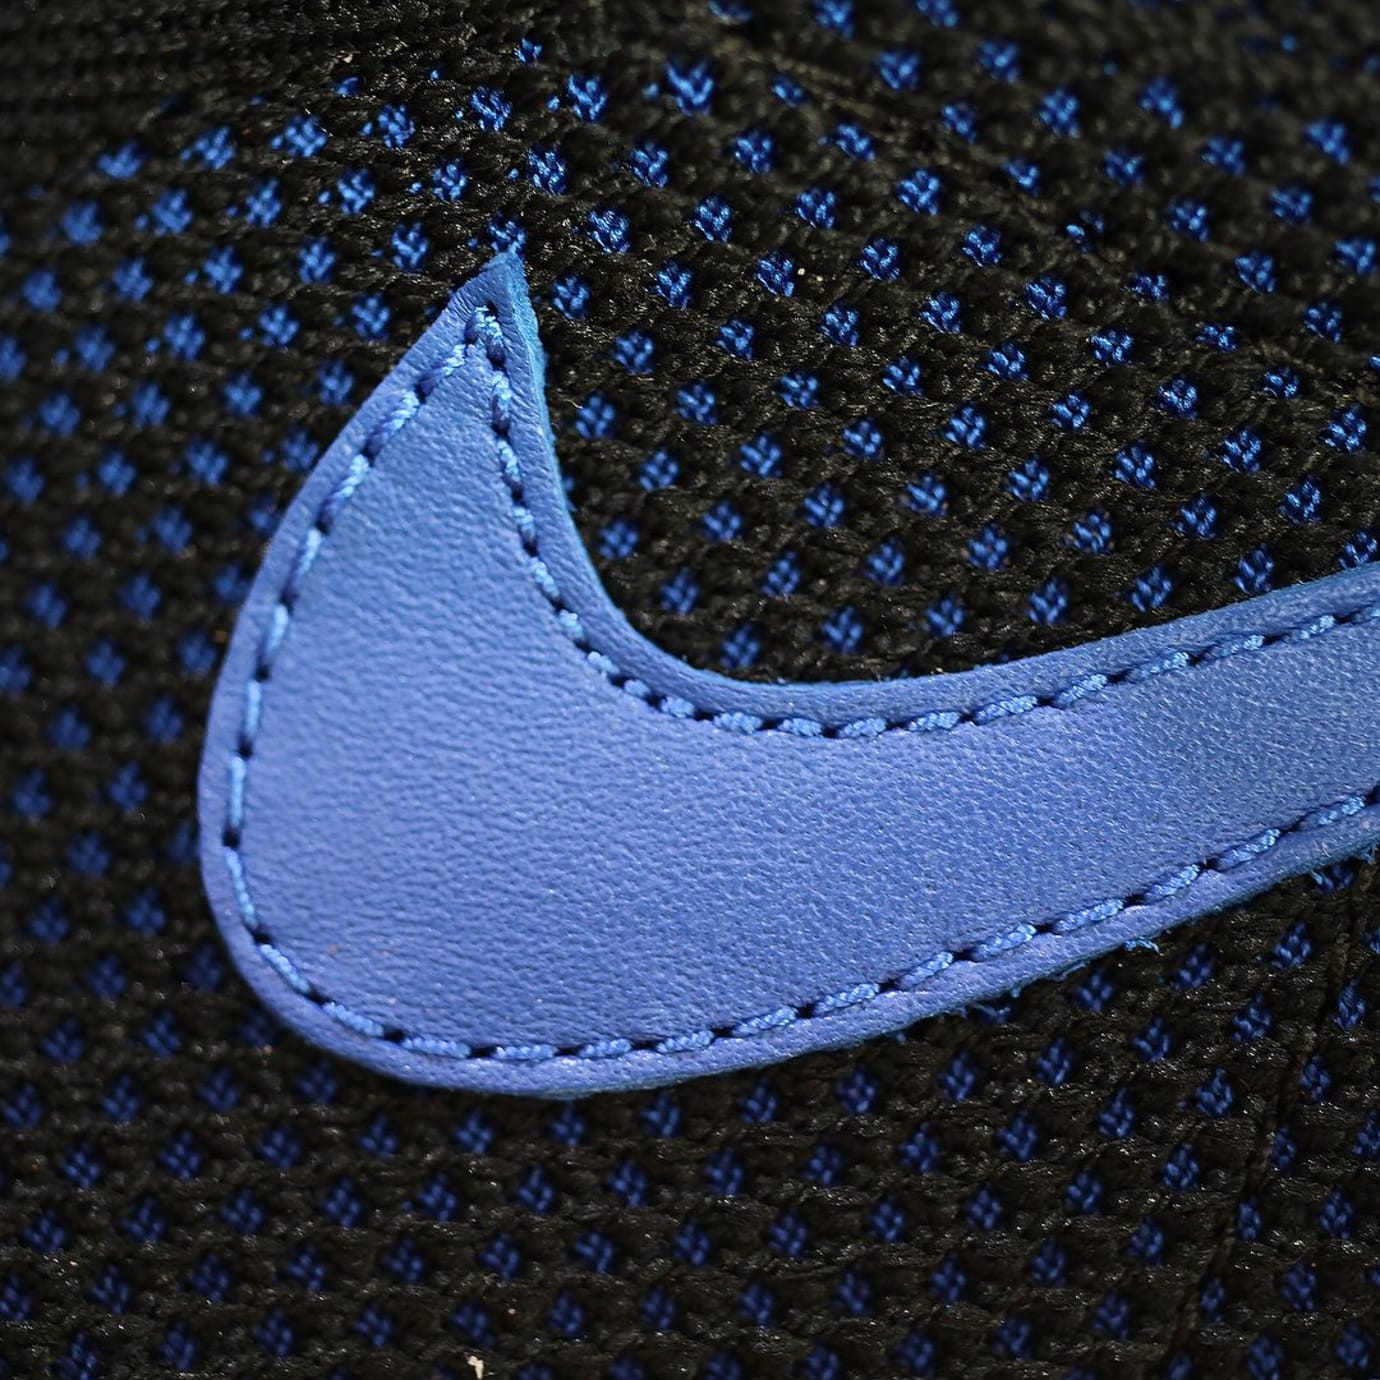 Air Jordan 1 Flyknit Royal Release Date 919704-006 (13)